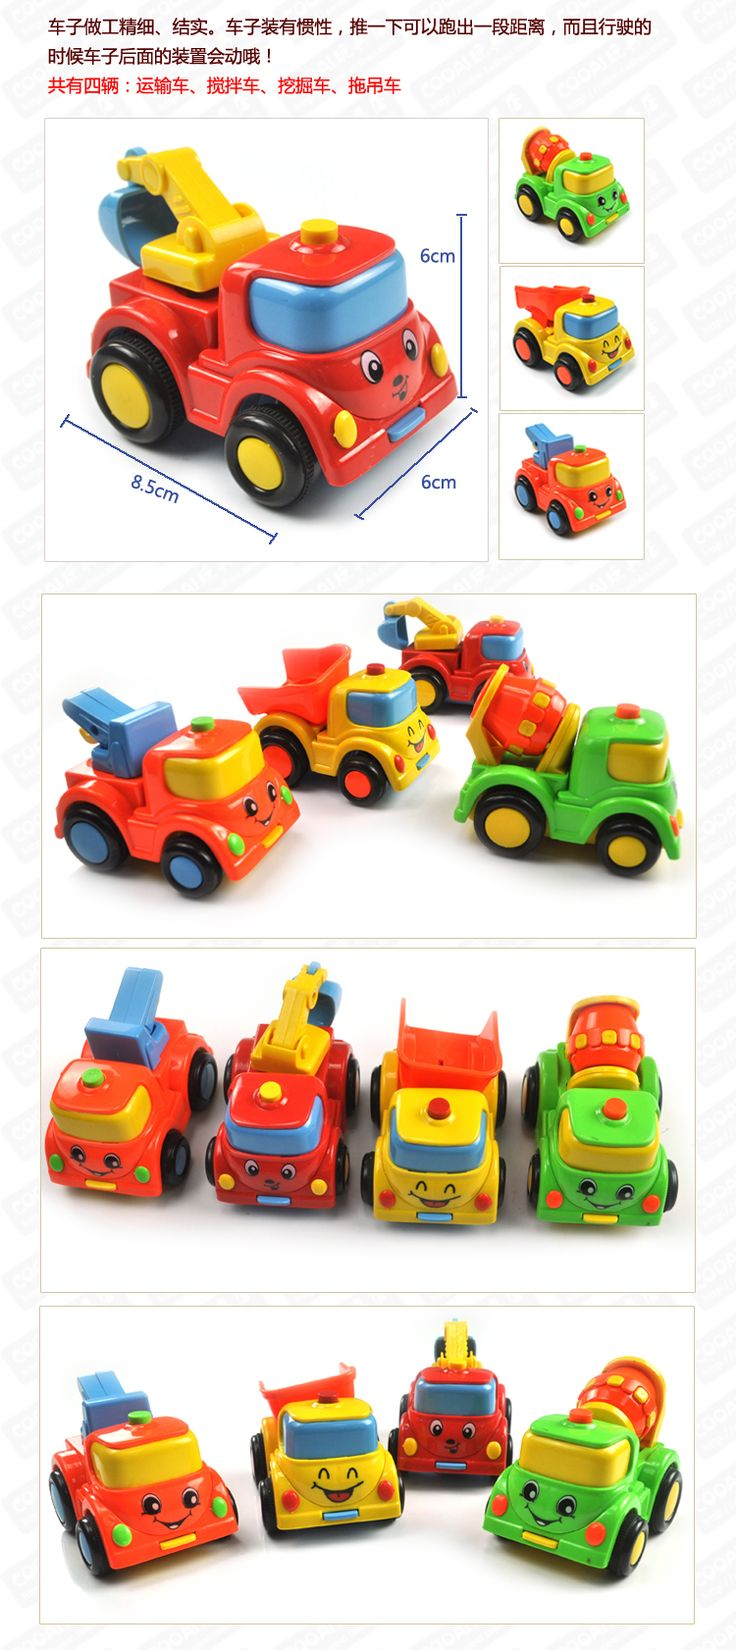 Claasic vintage toys vintage toys second shout out http www - Online Shop Baby Toy Inertial Smiling Face Car Baby Year Old Baby Toy Two Or Three Year Old Boy 1 Boy Toys Cars Boys